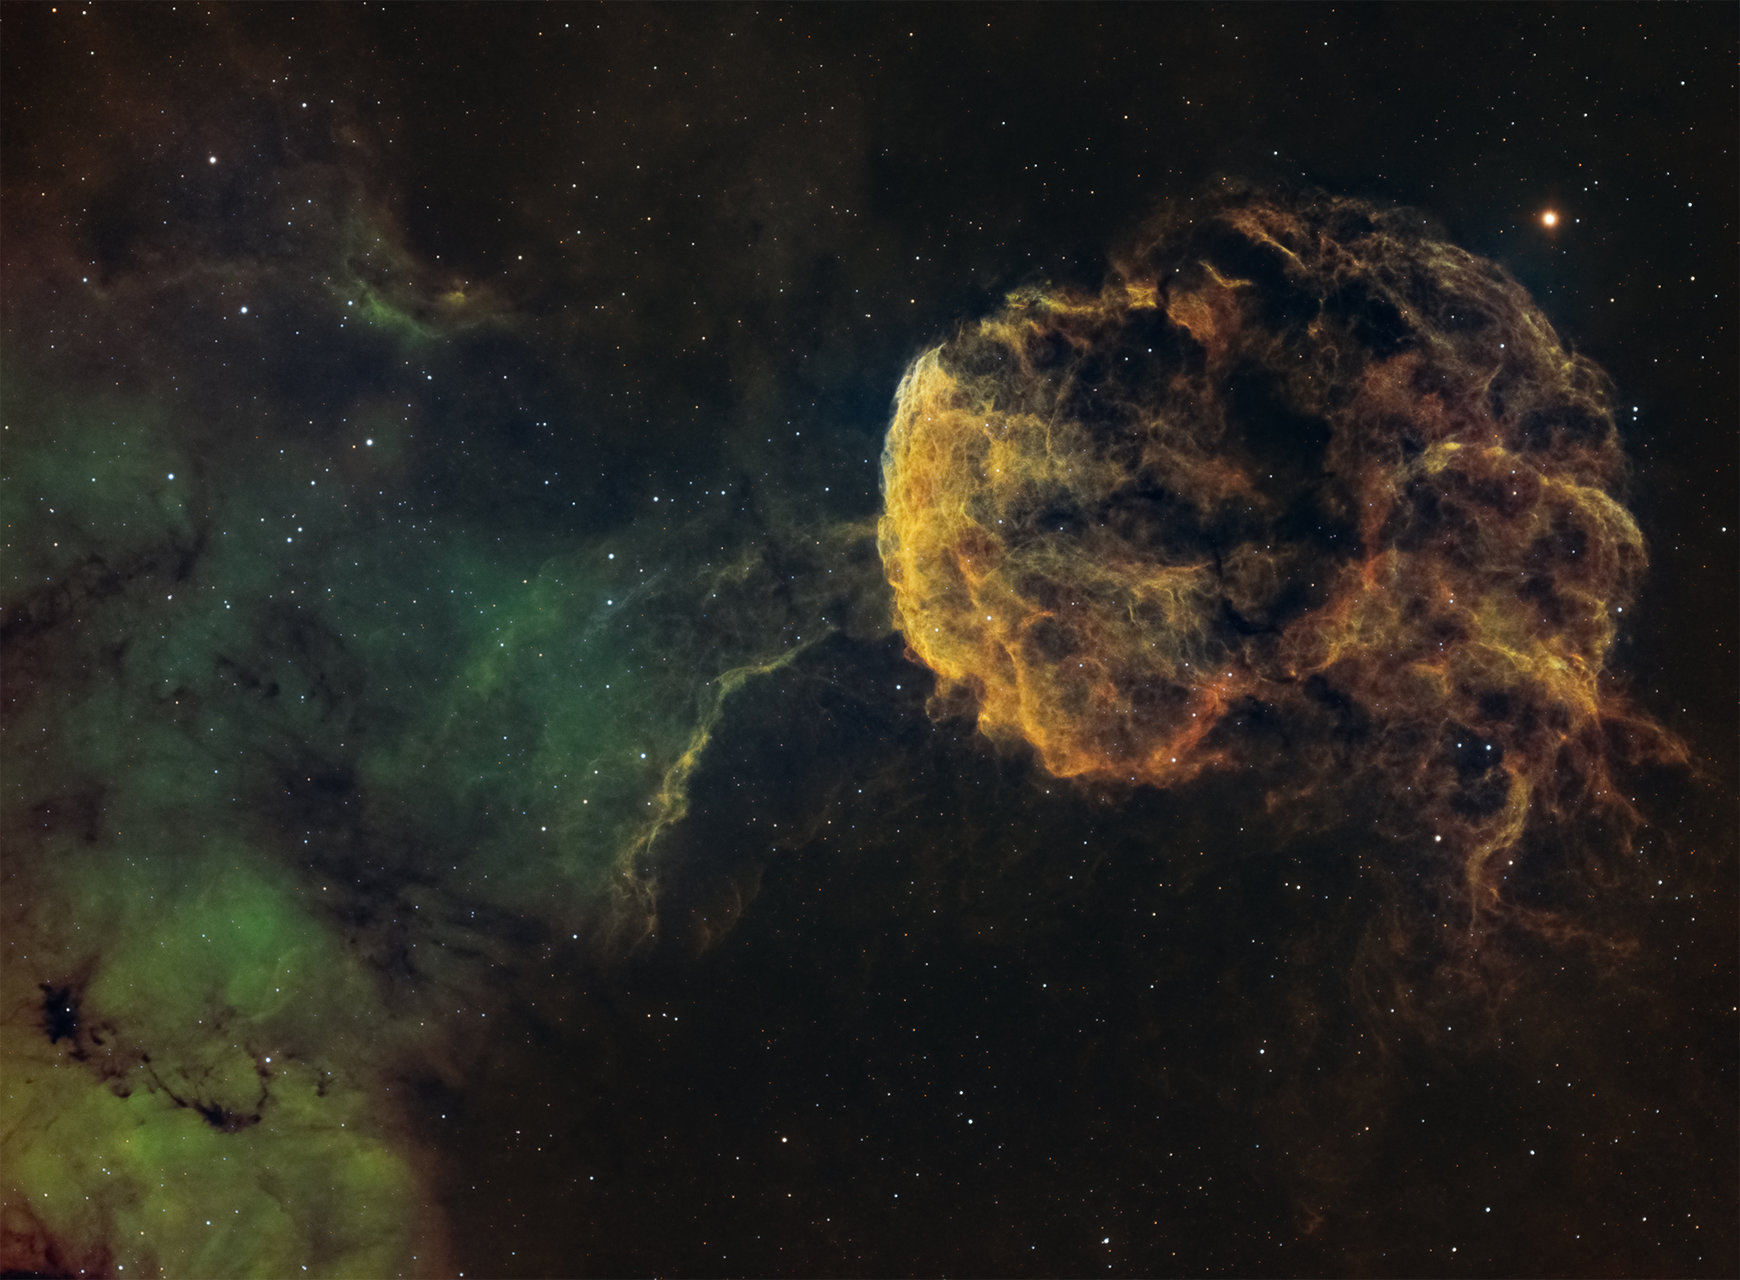 Jellyfish Nebula IC443 | Author Viktor Penkov - Pelinio | PHOTO FORUM